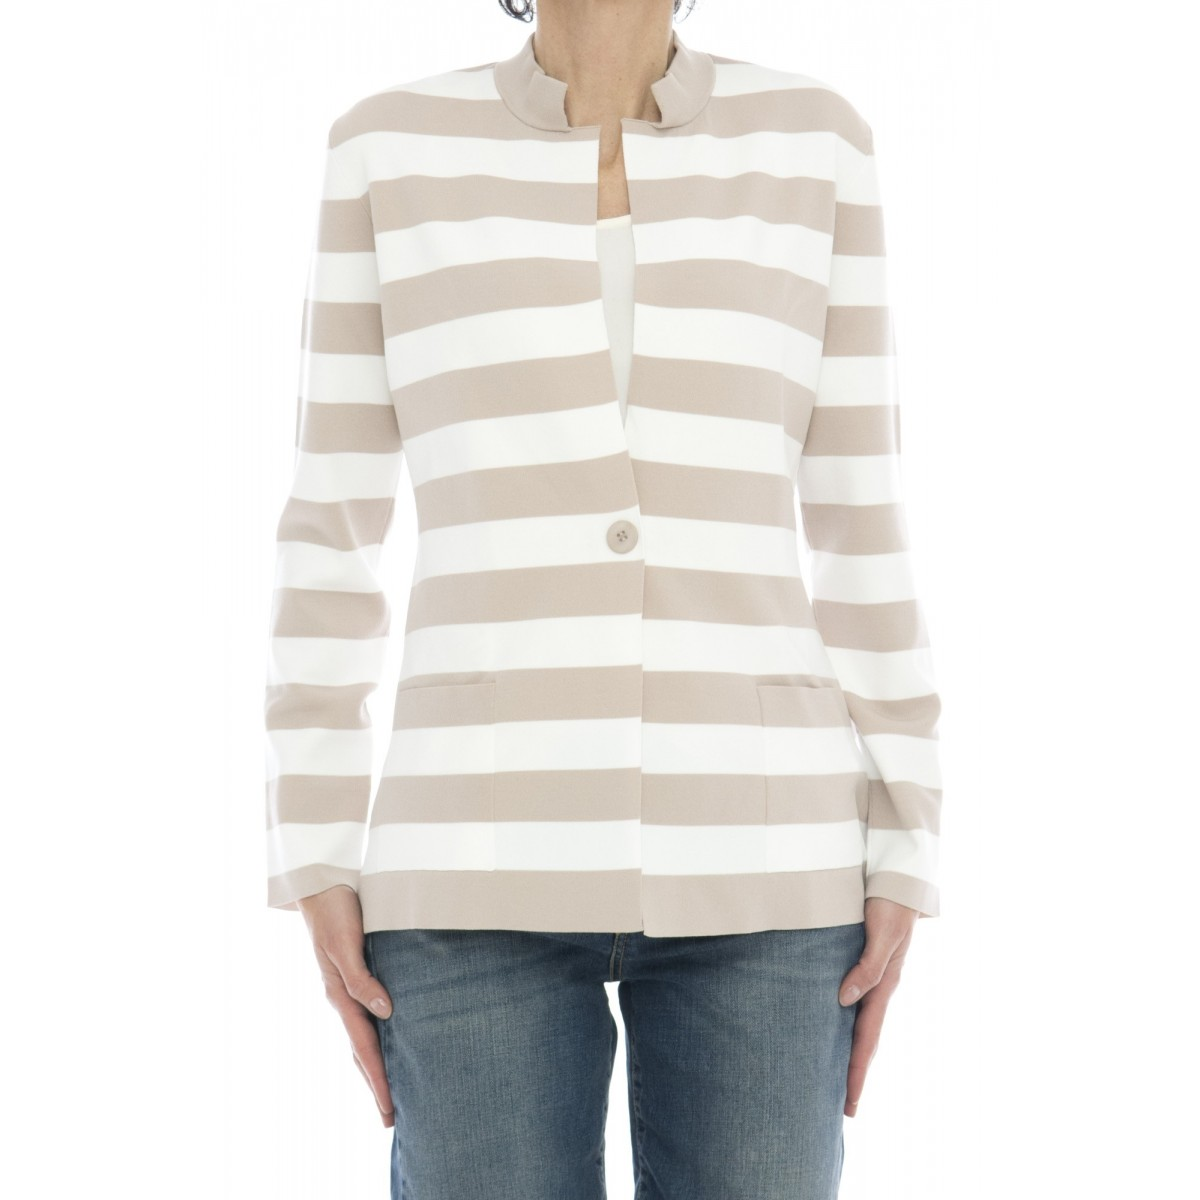 Giacca donna - 3922/57 giacca righe